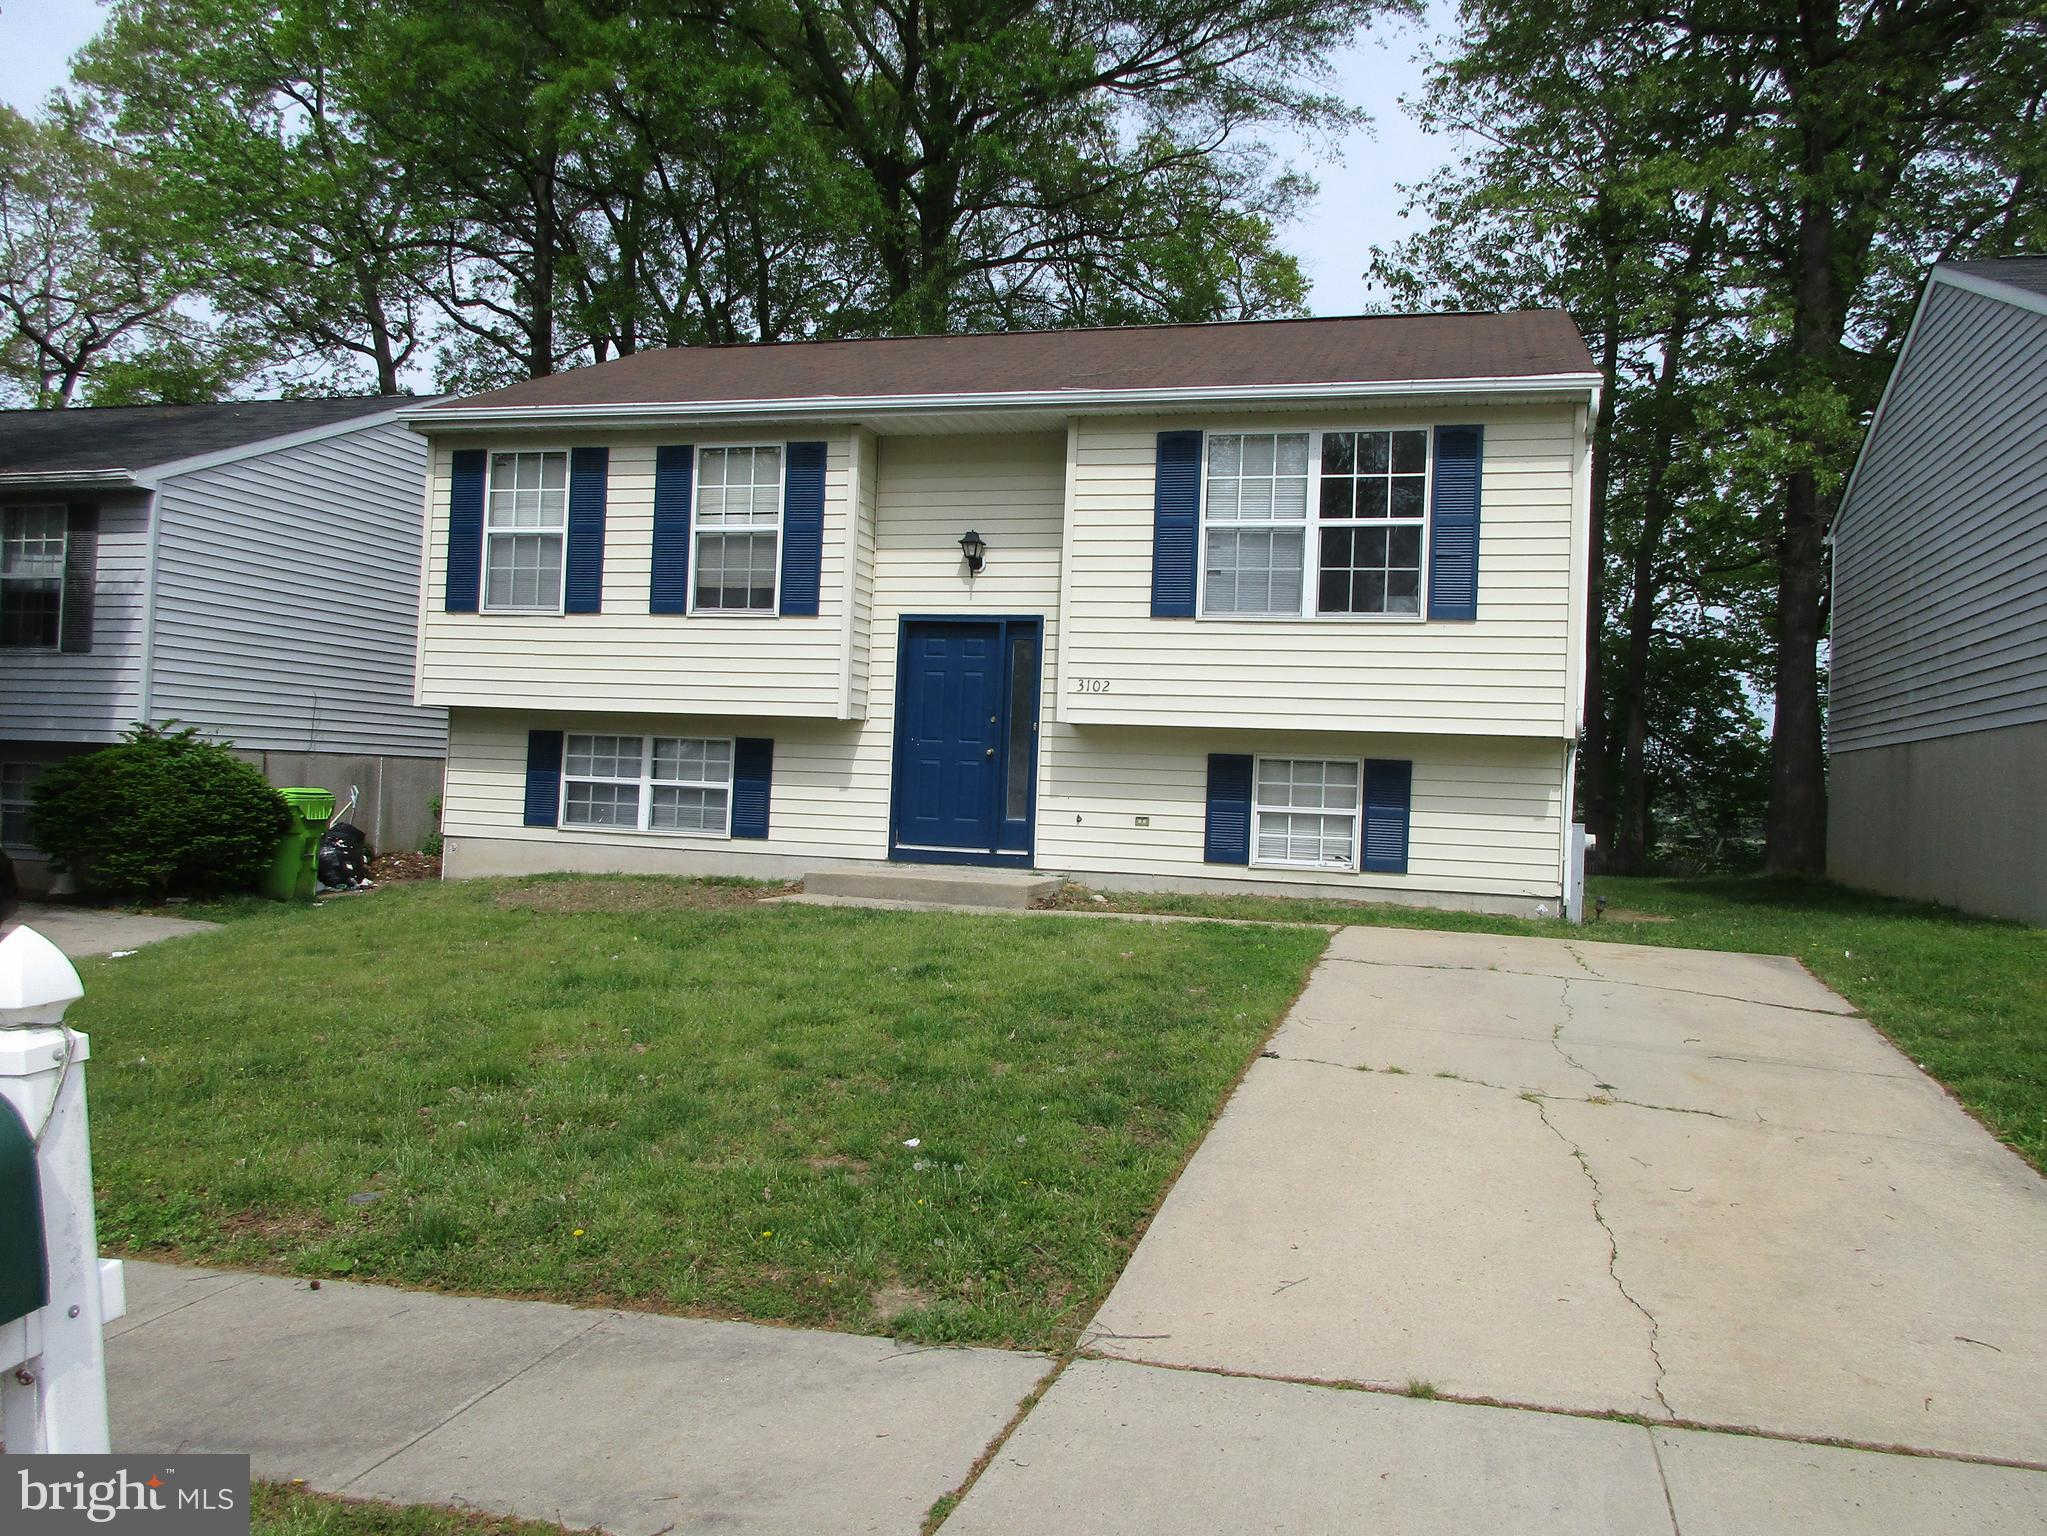 Another Property Rented - 3102 Sounding Drive, Edgewood, MD 21040